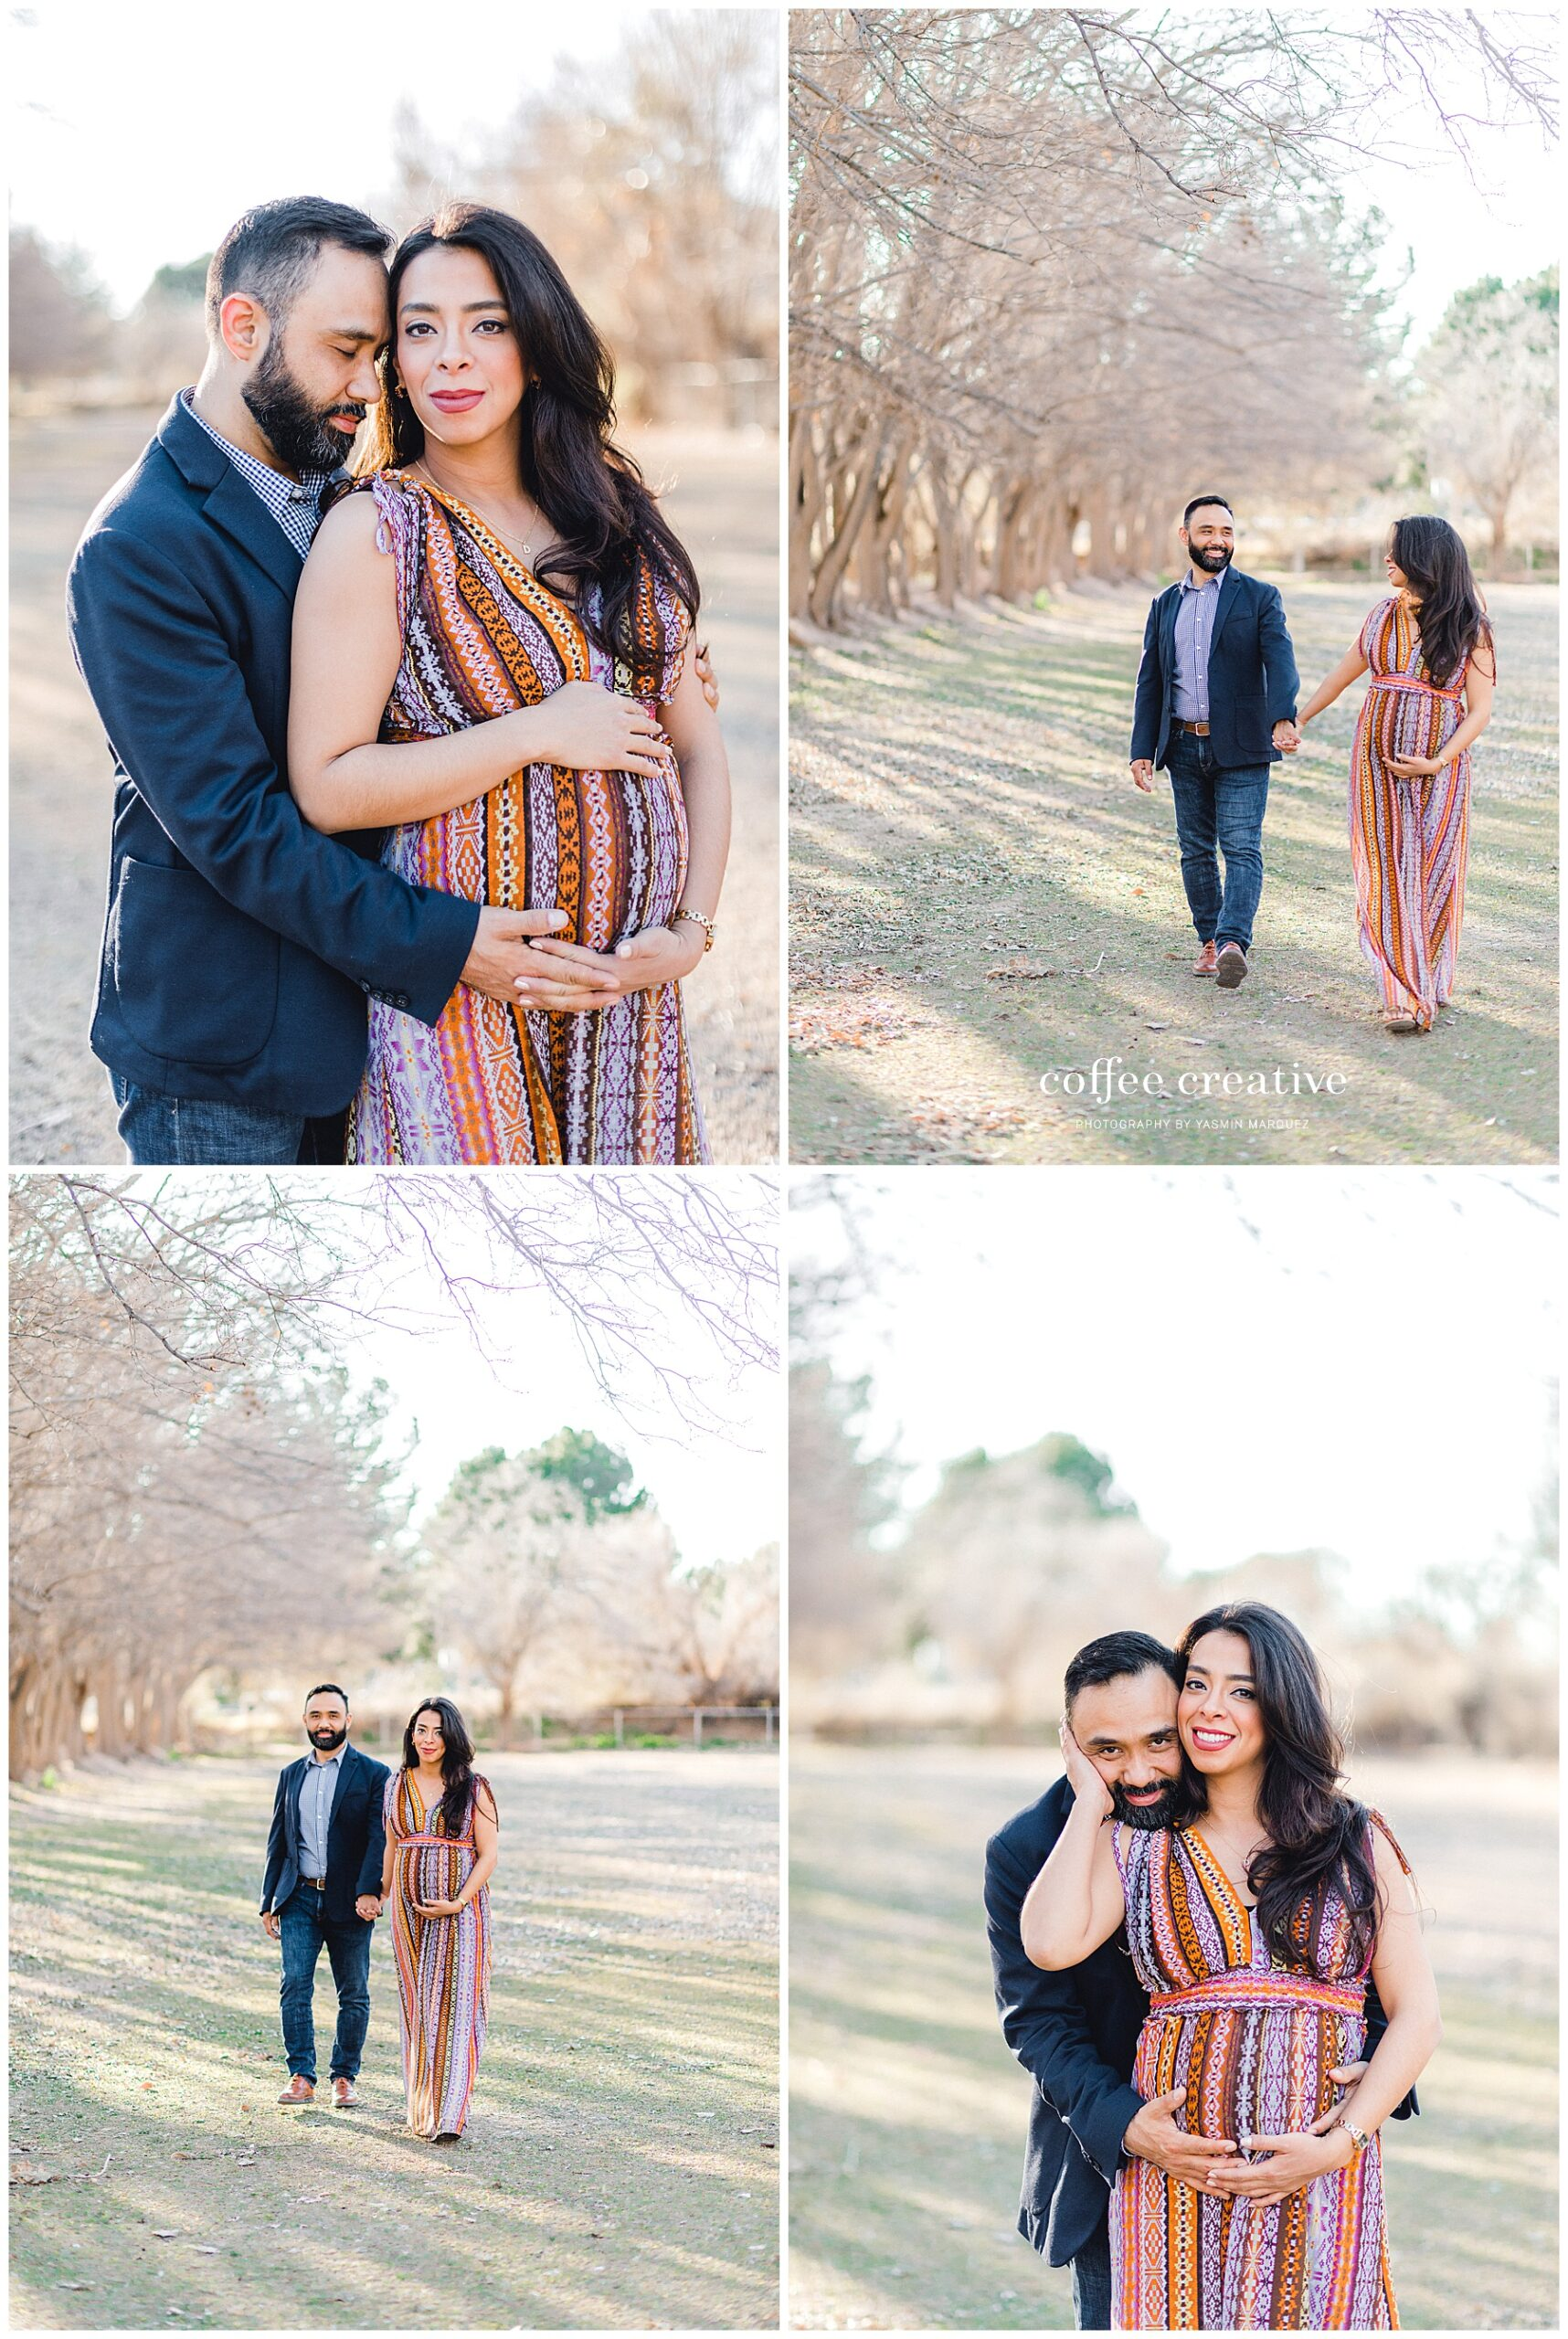 El Paso photography, Fort bliss photographer, el paso family photographer, El Paso Texas Maternity Photographer, Outdoor Rustic Spring Maternity Session, El Paso Texas Maternity Photography